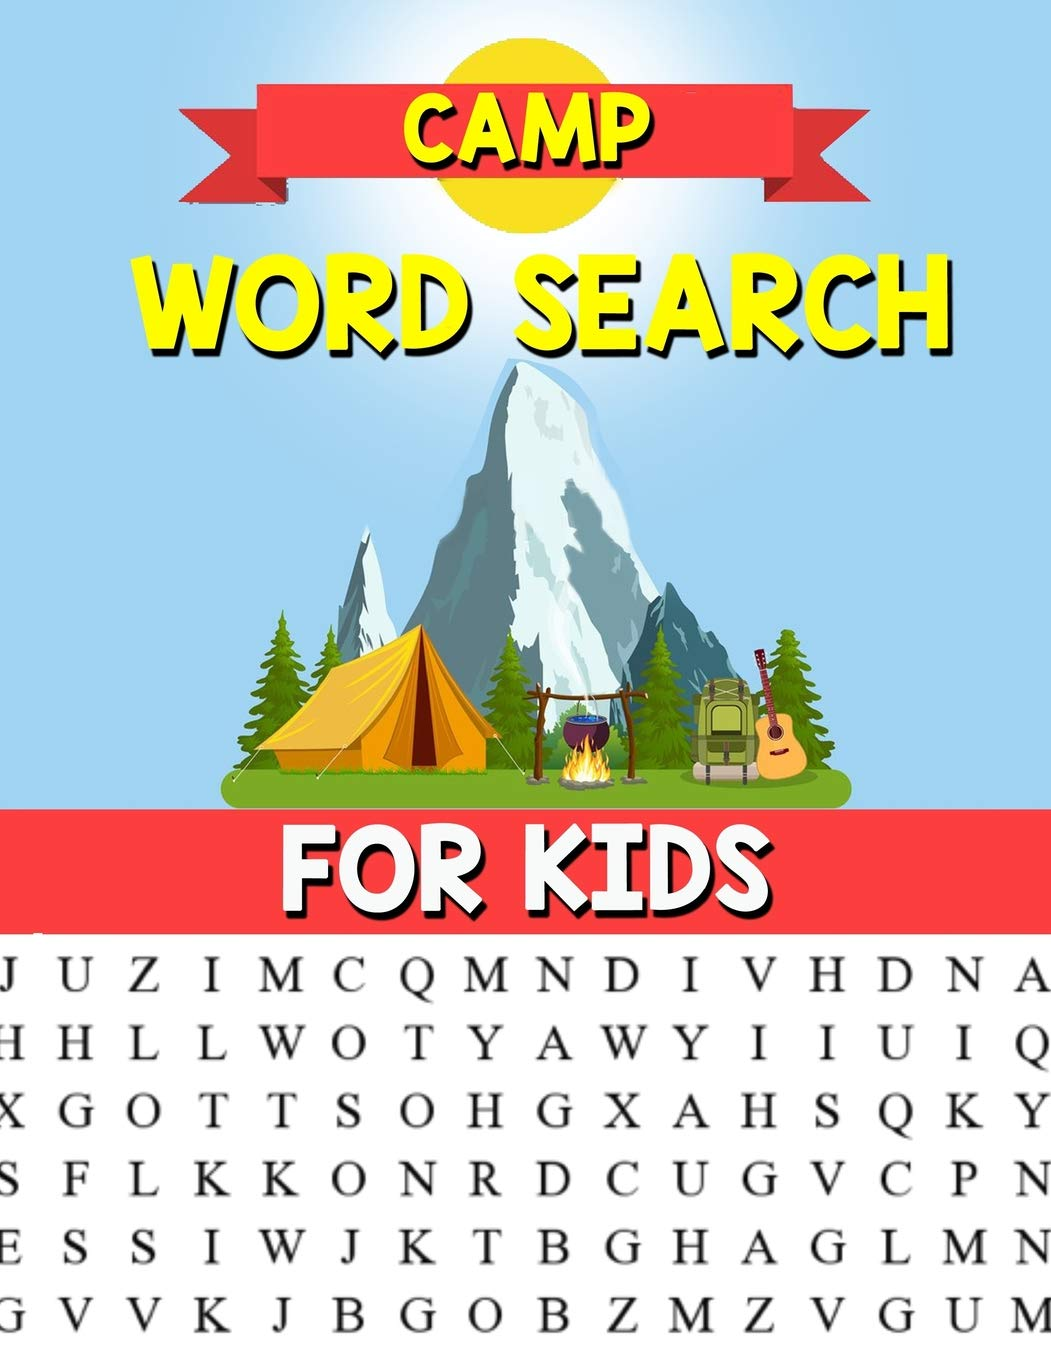 87a1af299d Camp Word Search For Kids: A Happy Camper Word Search Puzzle For ...